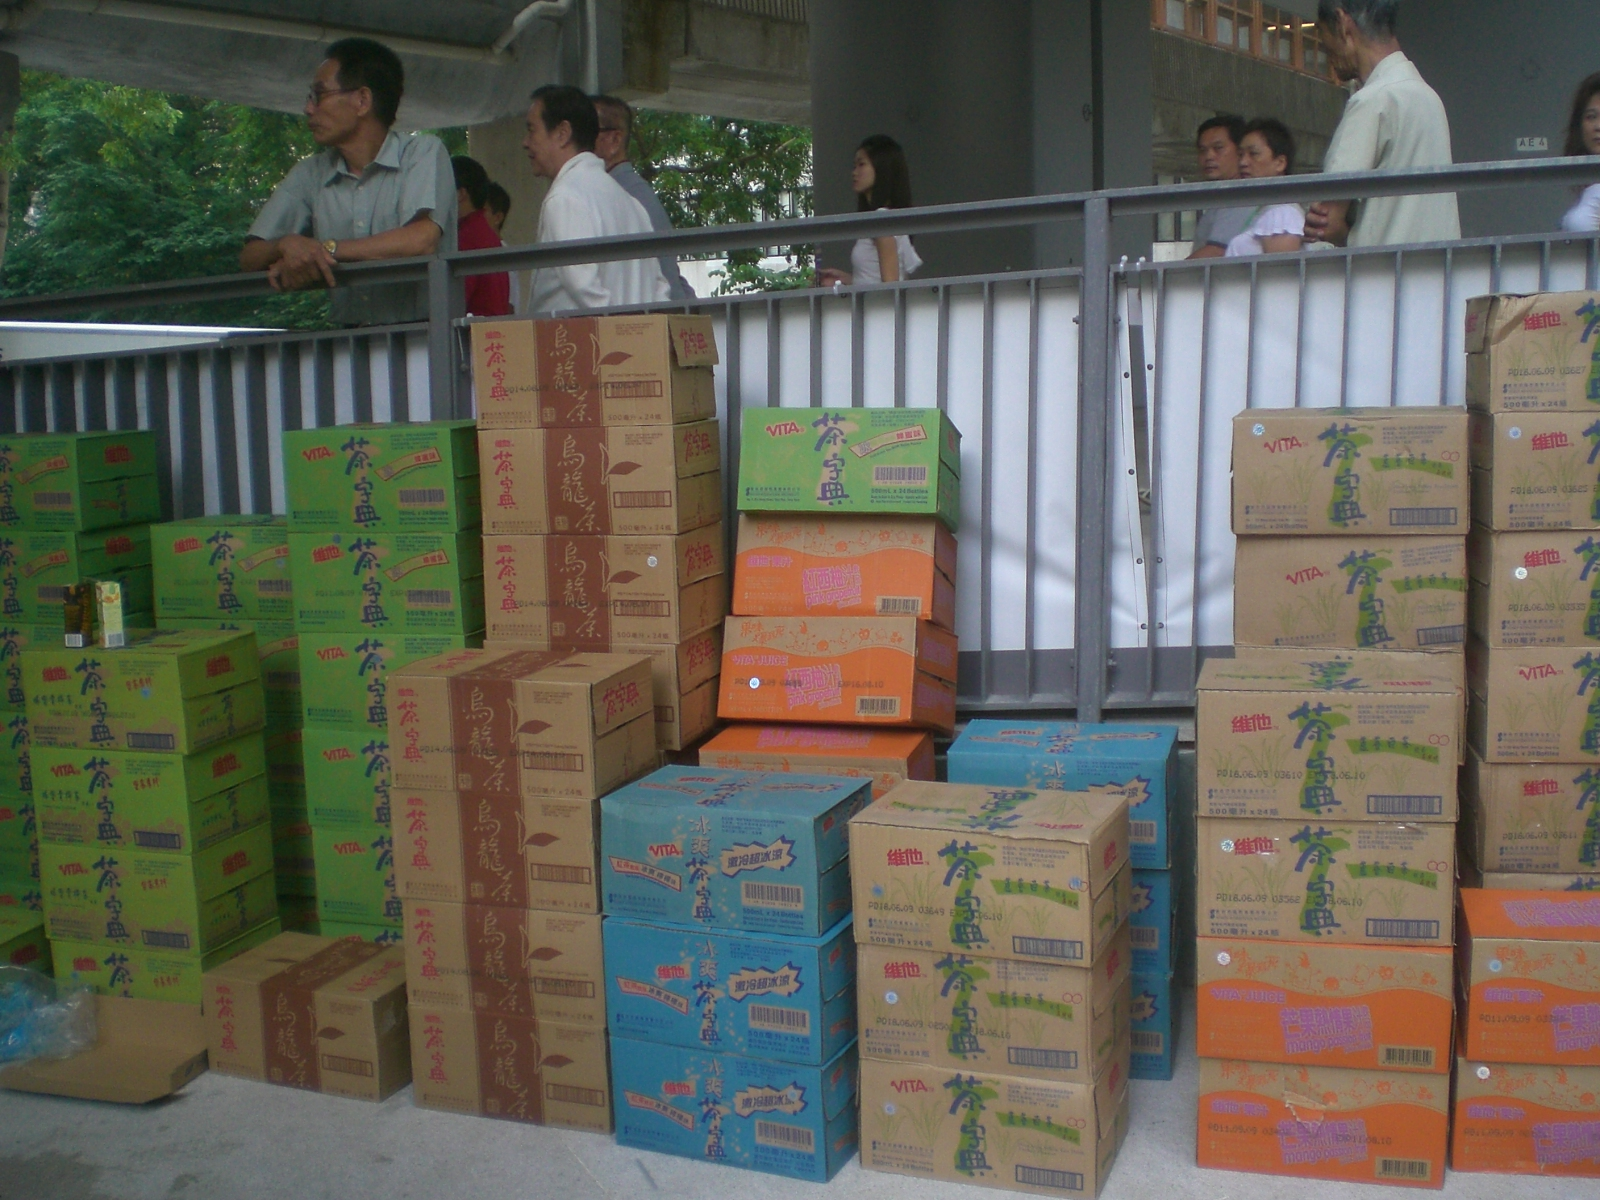 Hk chai wan open day youth square vitasoy cardboard boxes